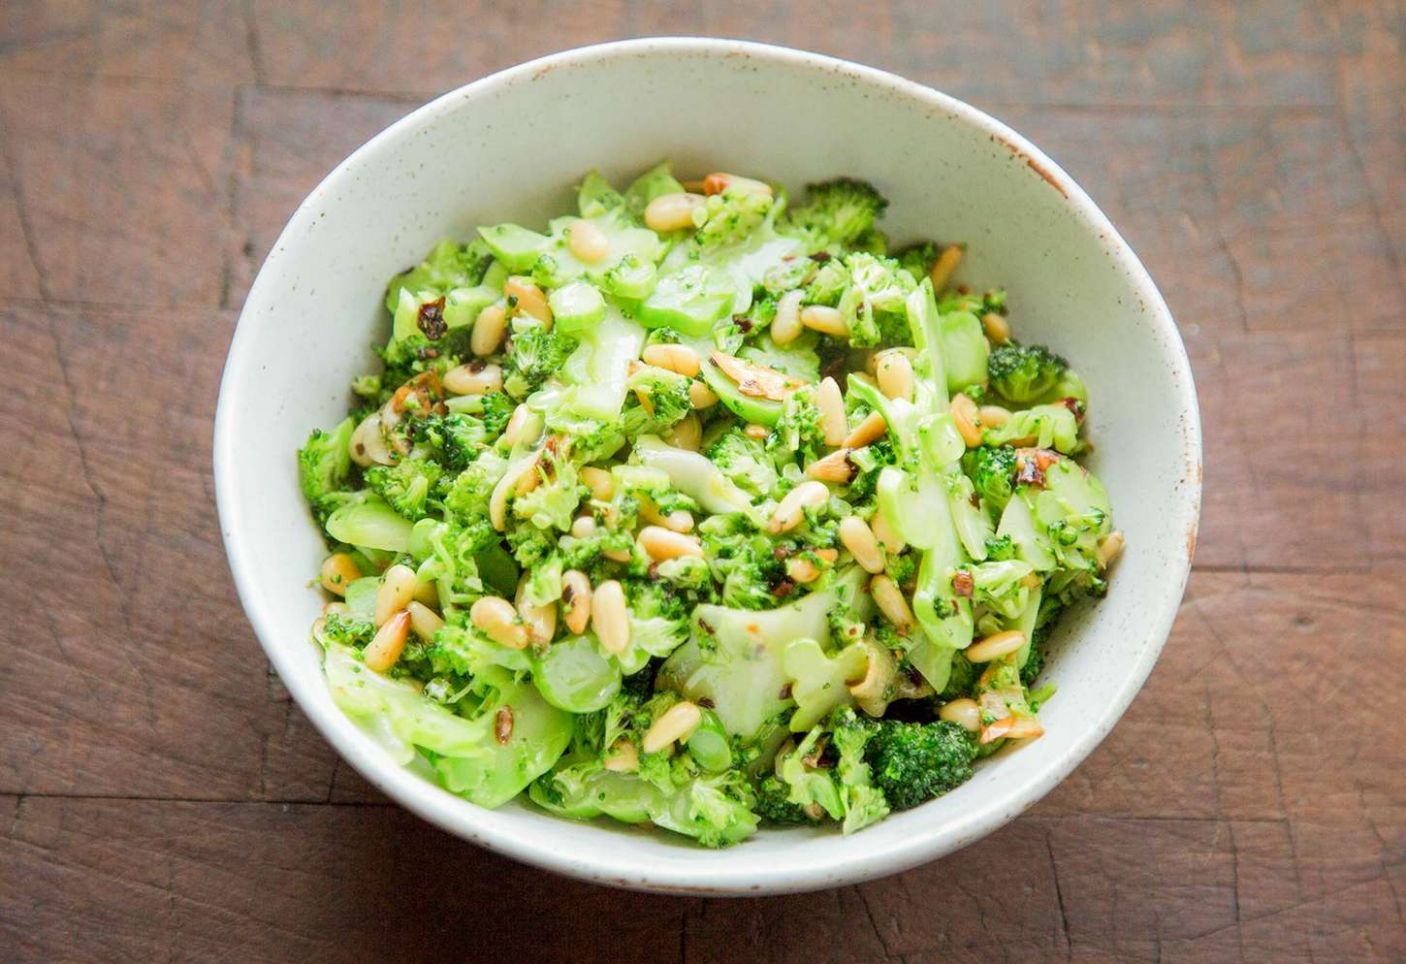 A Bright, Simple Broccoli Side Dish You Can Make in 11 Minutes - Recipes Vegetable Side Dishes